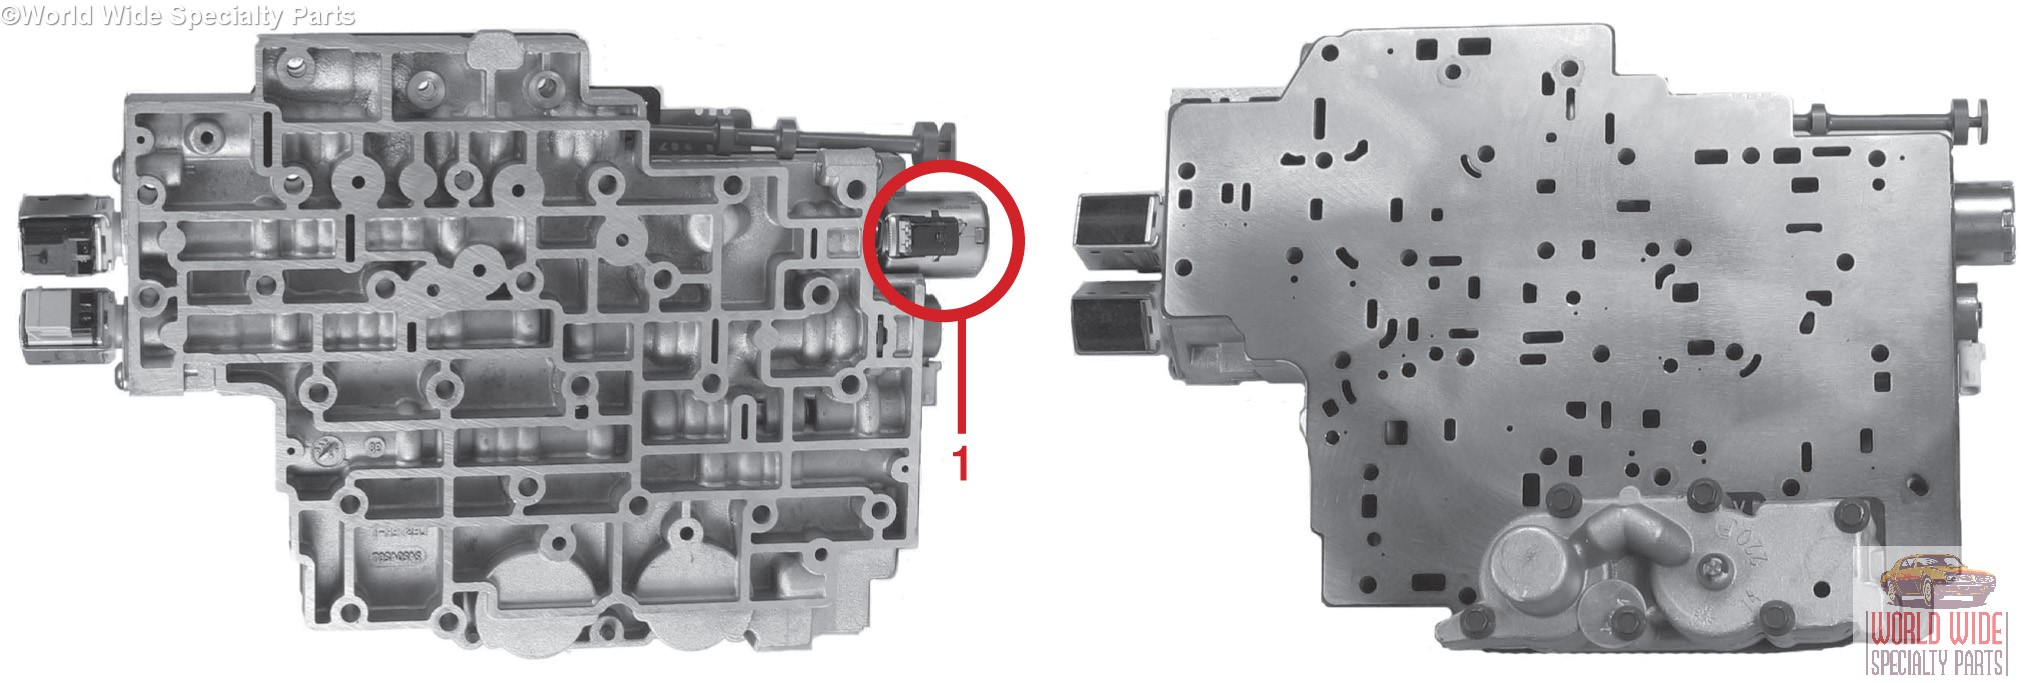 Gm 4l80e Valve Body 2004 Up 1 Year Warranty Sonnax Updated And Ford Starter Solenoid Wiring Diagram Besides 1950 Chevy Models Use The Silver Holley Epc With A Molded Connector In Above Photo You Can See